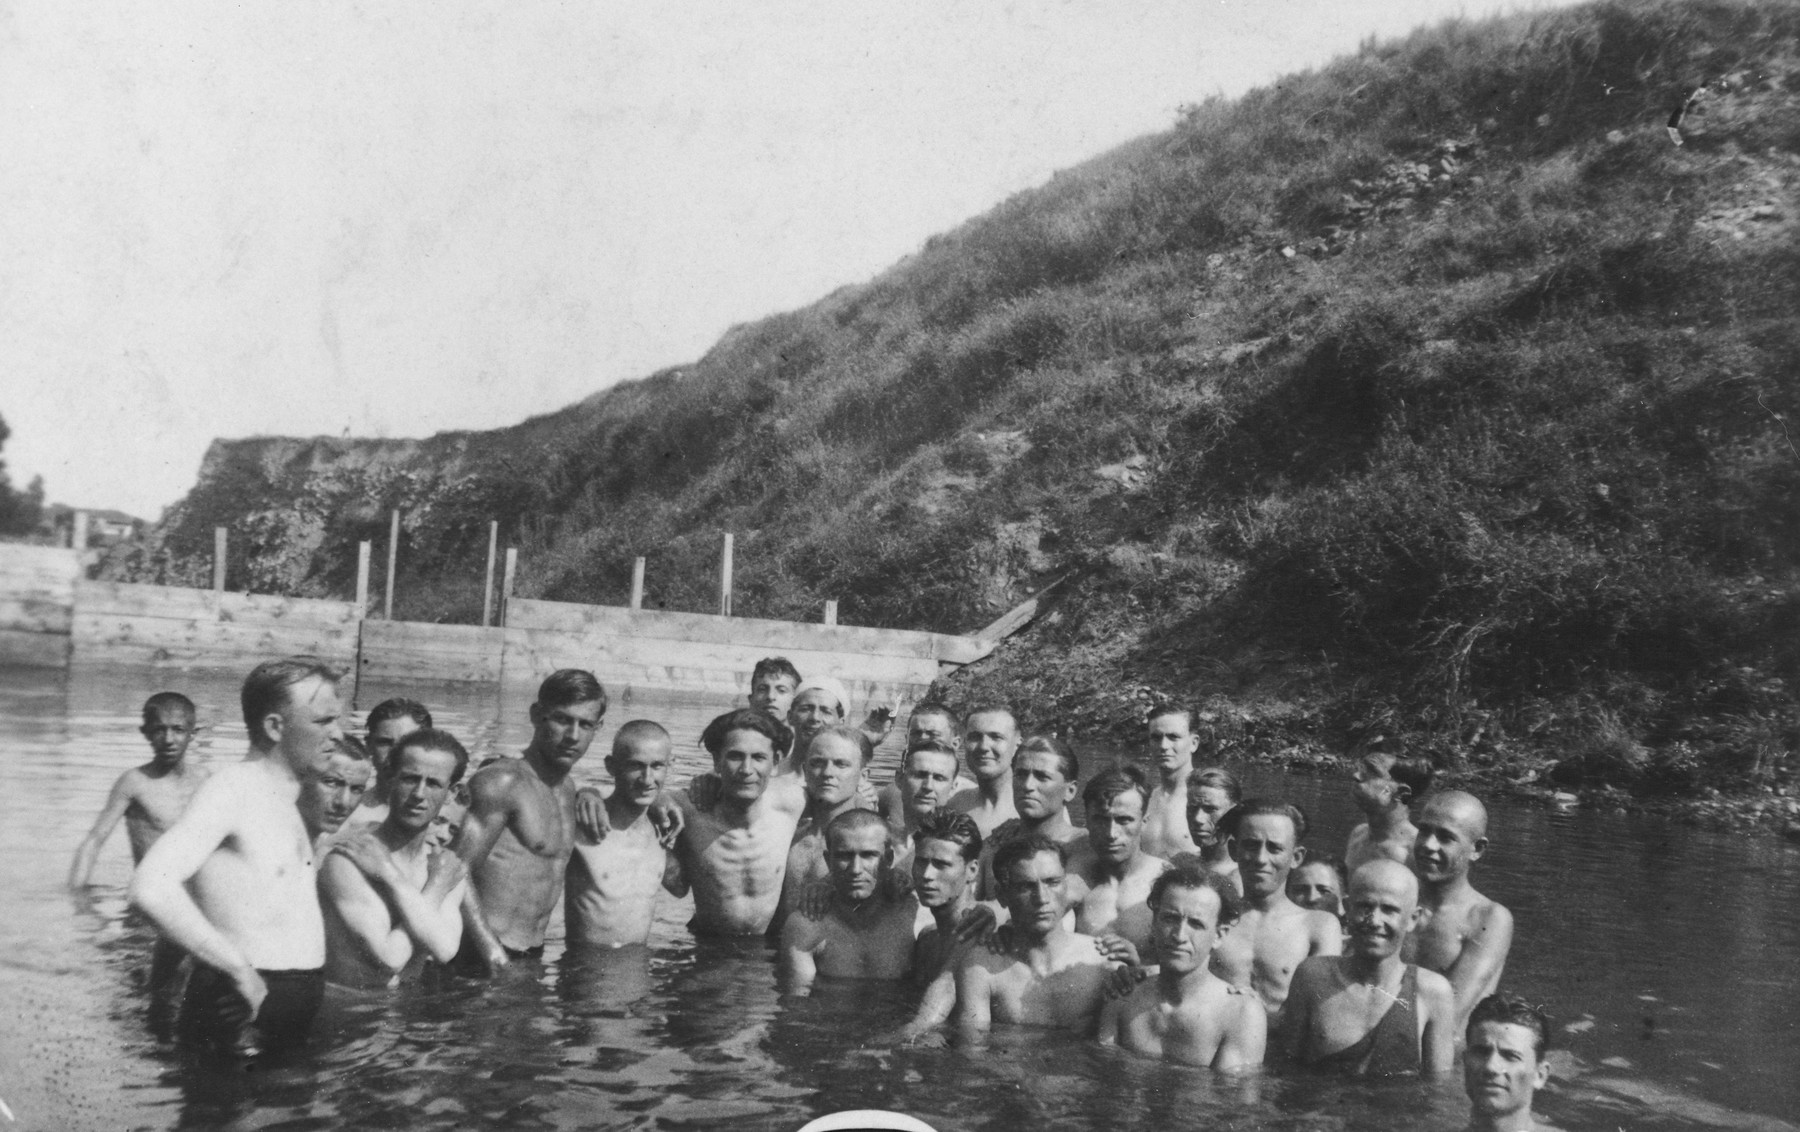 A group of Jewish young men pose together while swimming in a lake.